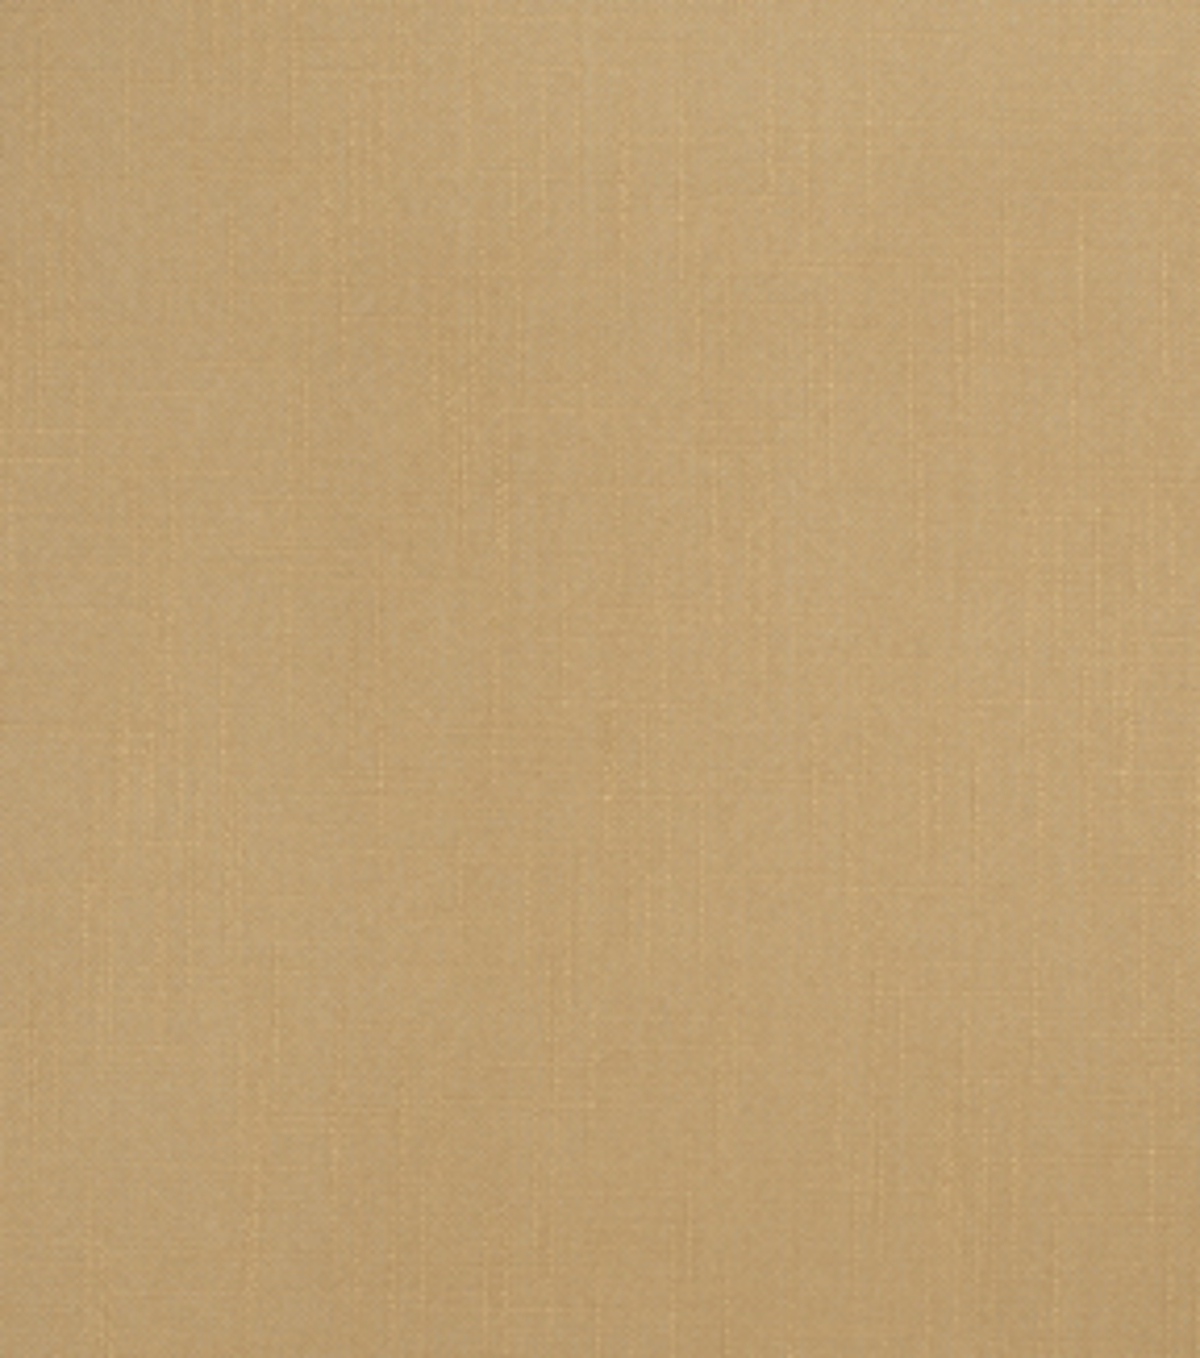 Home Decor 8\u0022x8\u0022 Fabric Swatch-Signature Series Gallantry Khaki